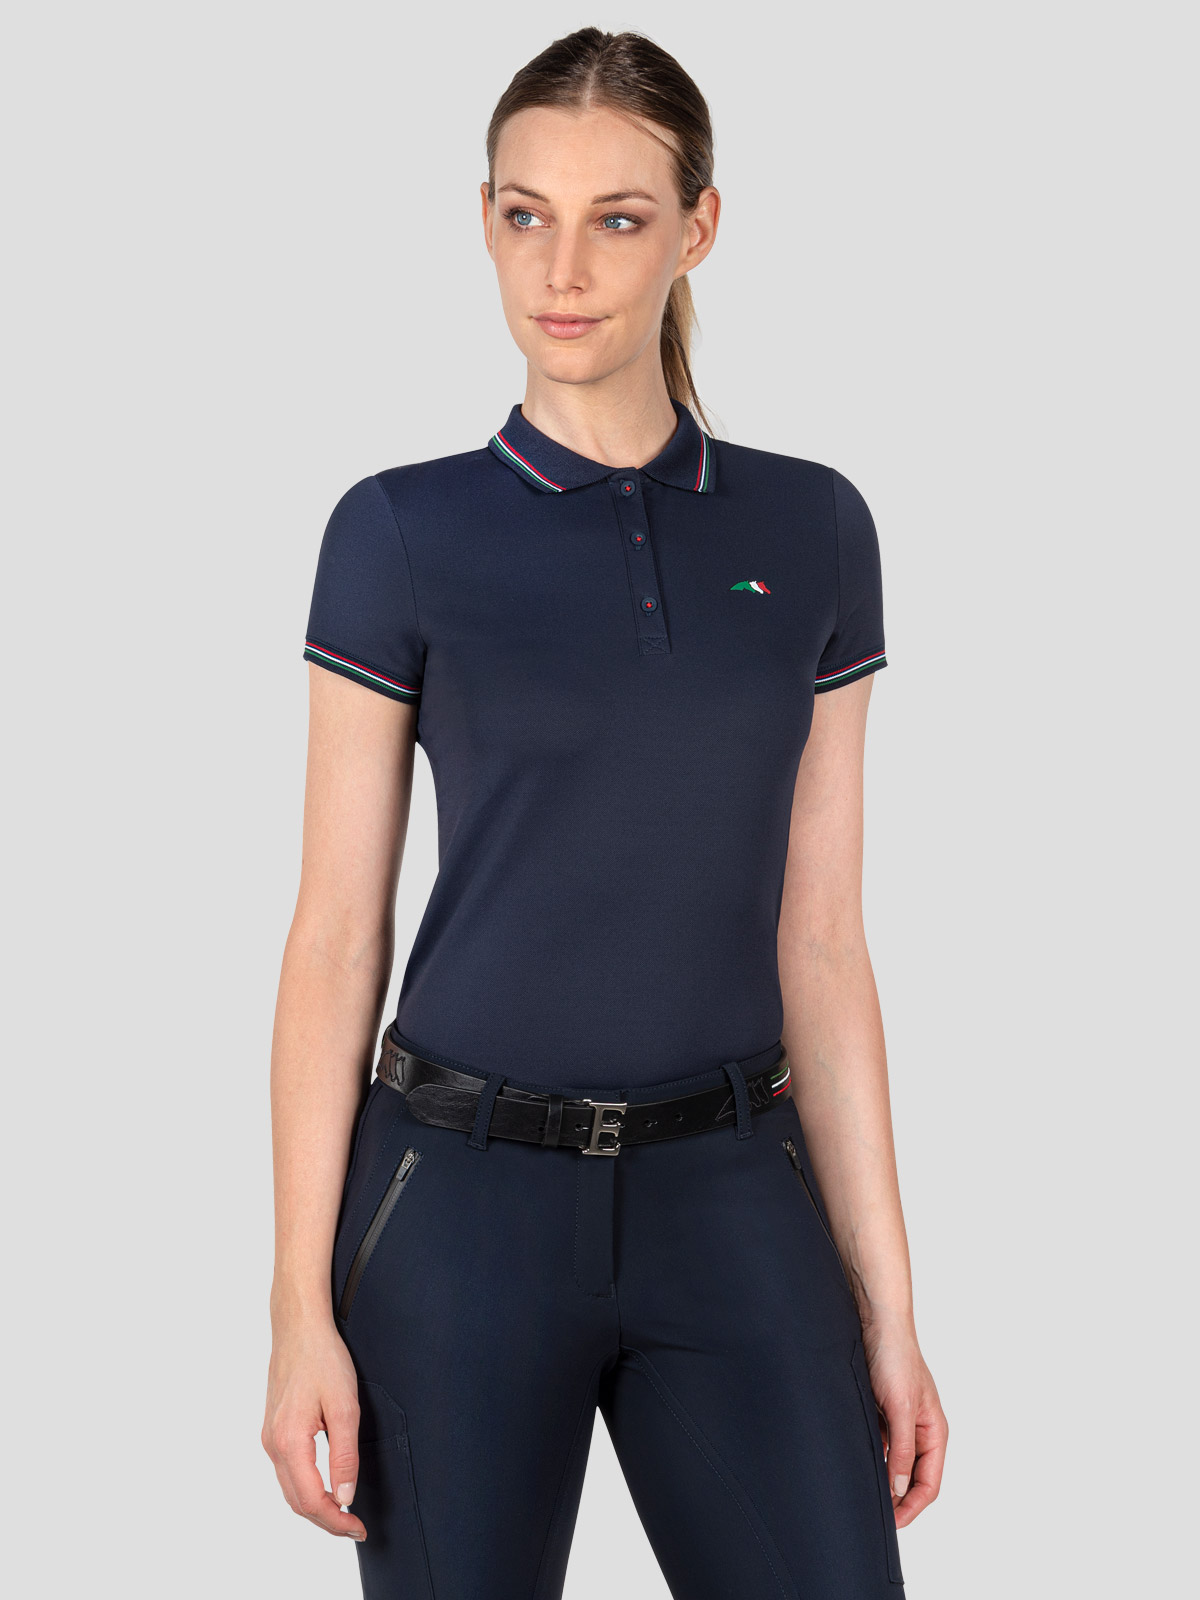 WOMEN'S TRAINING POLO SHIRT WITH ITALIAN FLAG TRIM 1